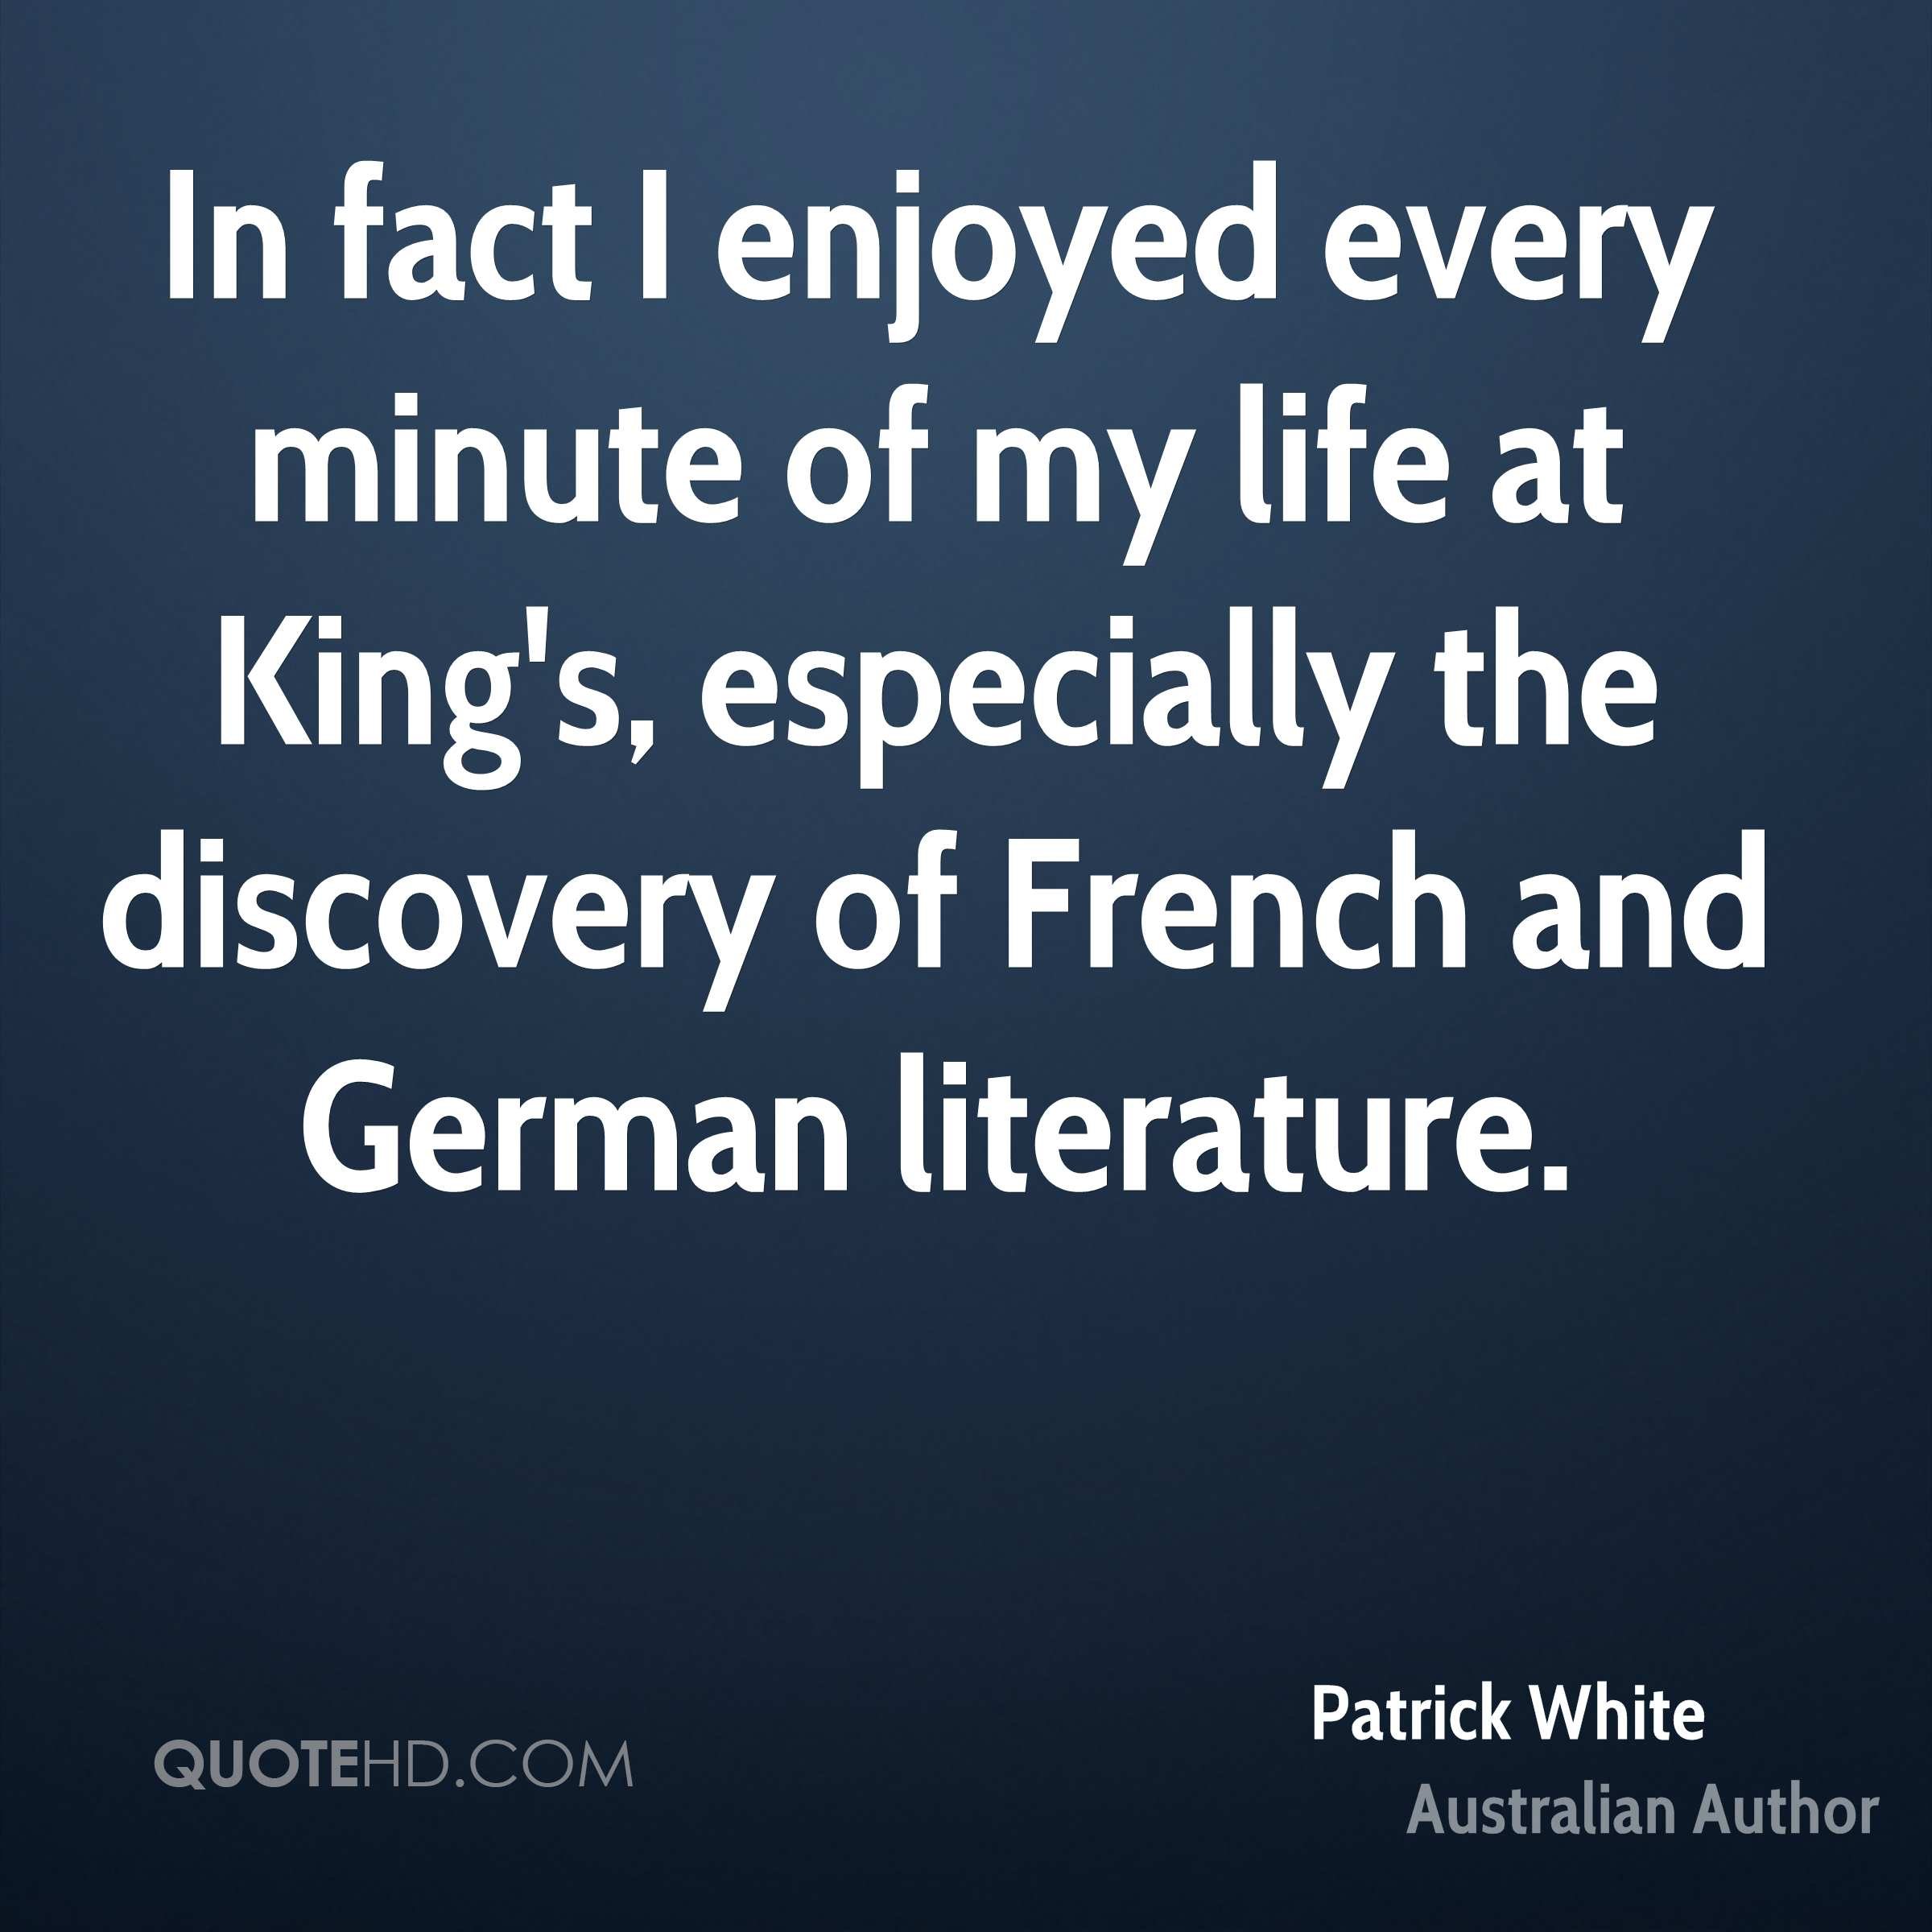 In fact I enjoyed every minute of my life at King's, especially the discovery of French and German literature.